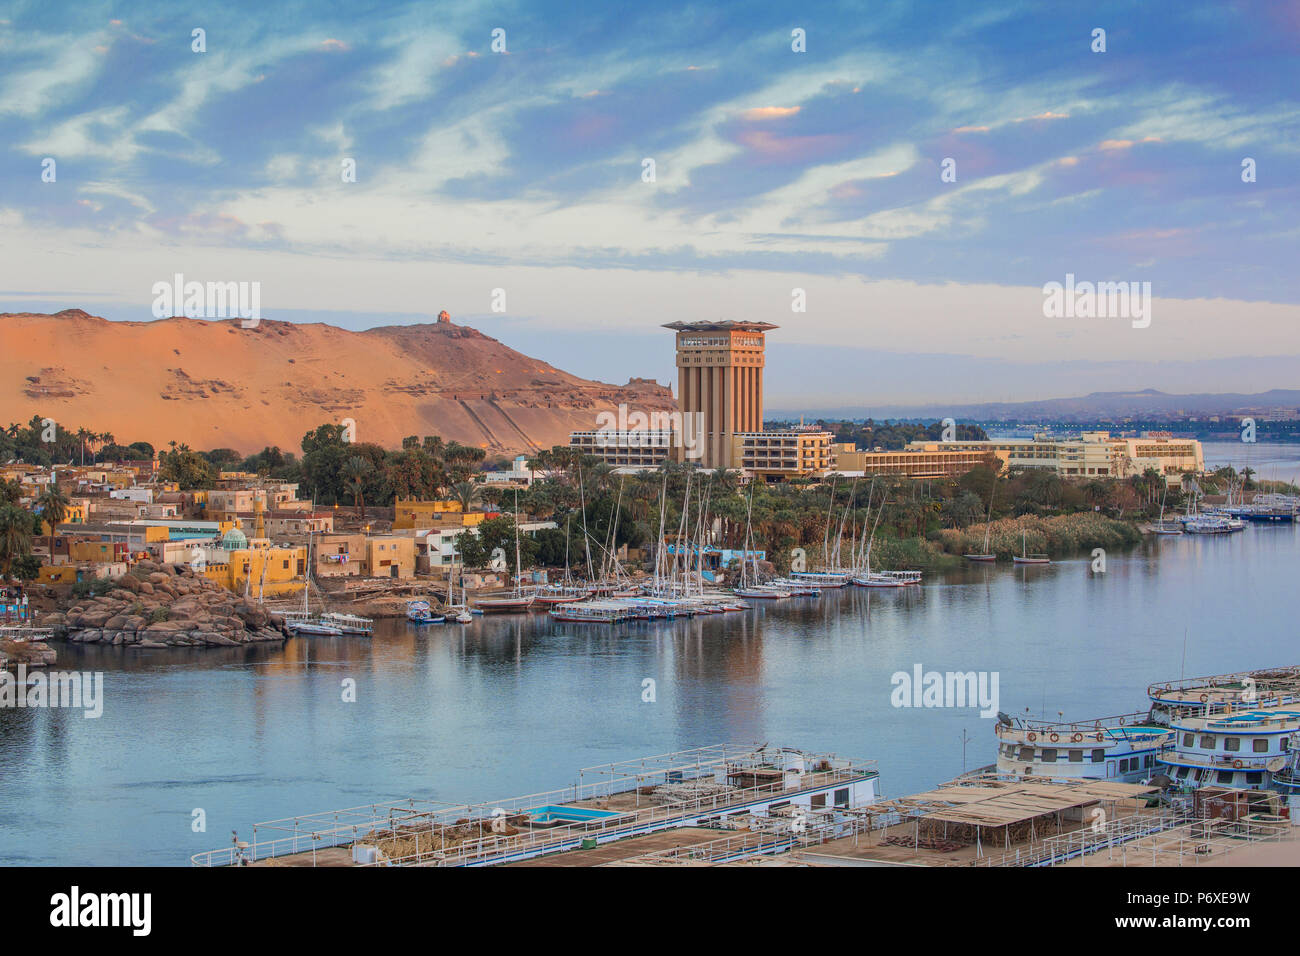 Egypt, Upper Egypt, Aswan, View of River Nile looking towards the Movenpick Resort and Tombs of the Nobles - Stock Image